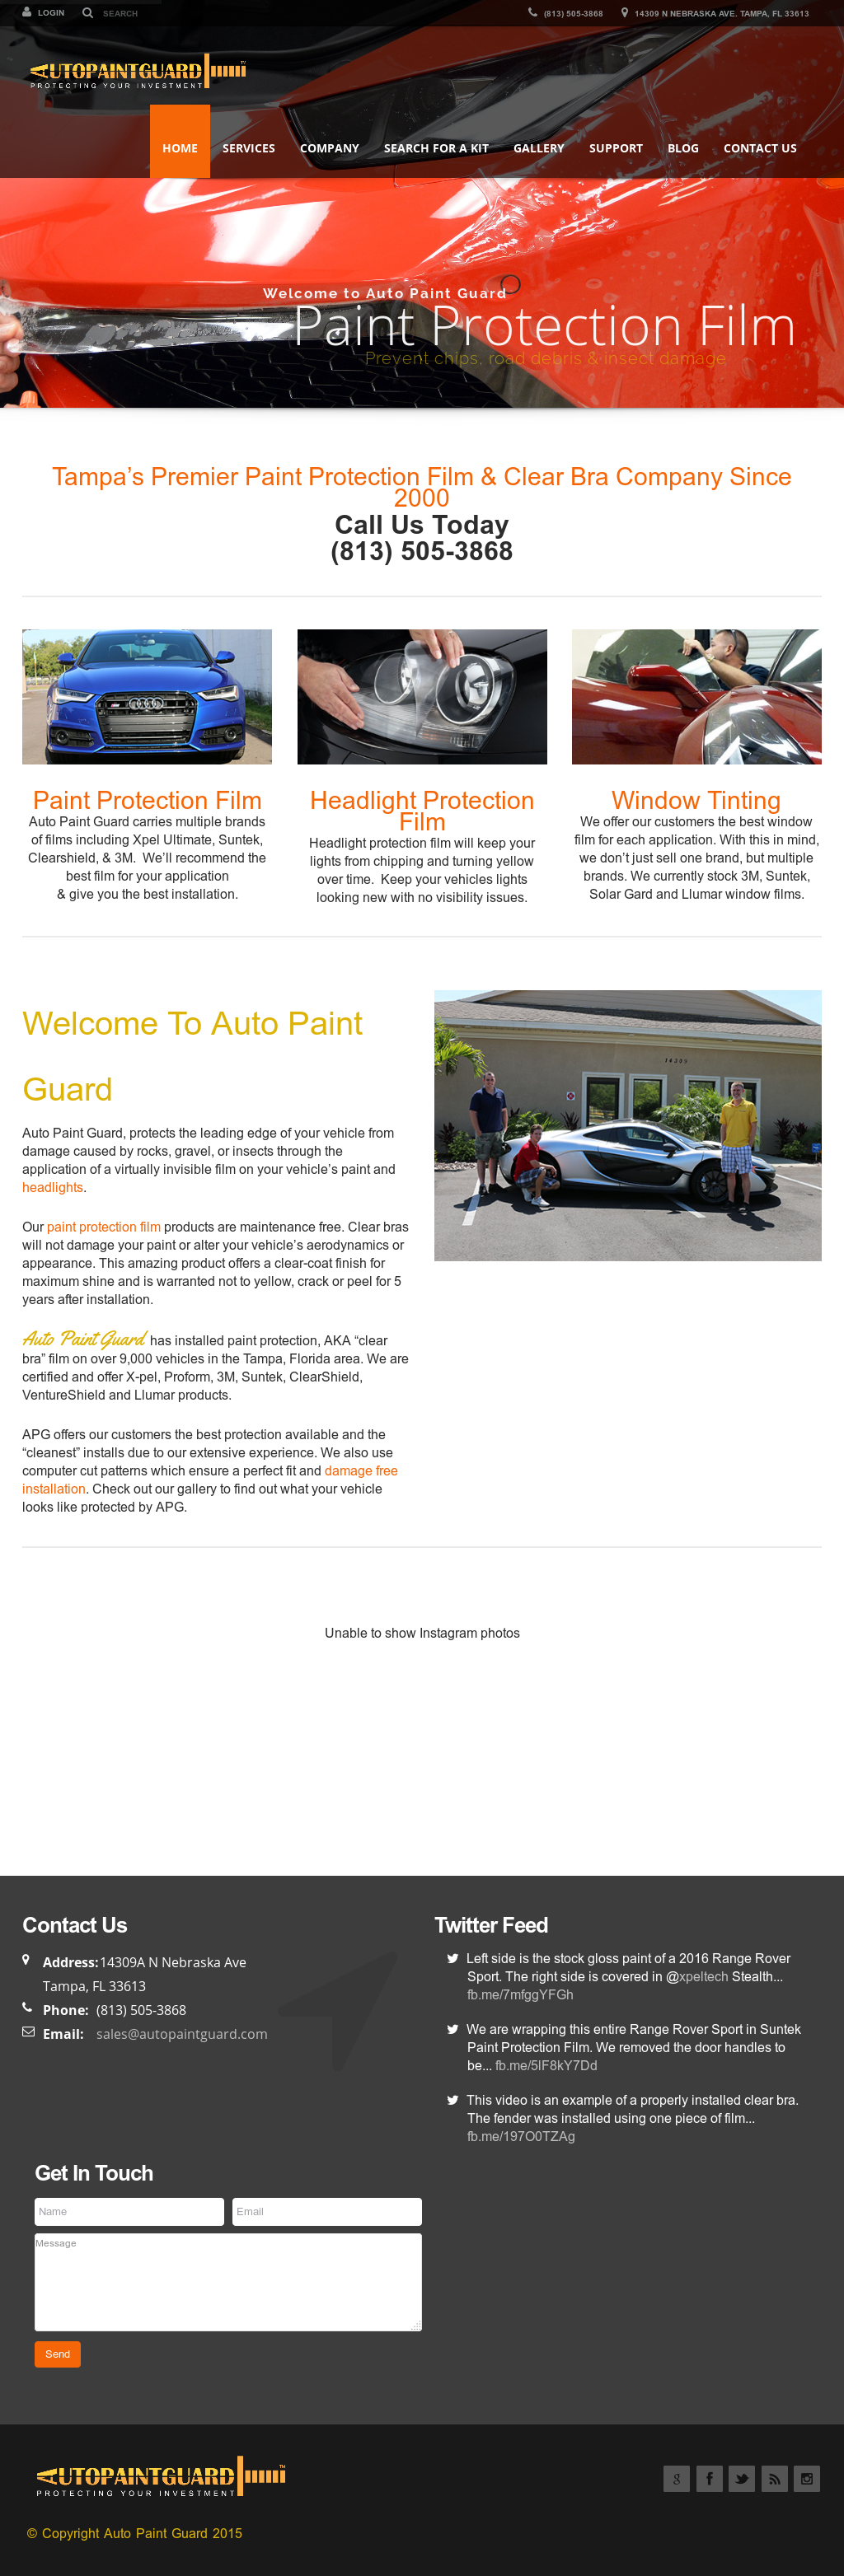 Auto Paint Guard Competitors, Revenue and Employees - Owler